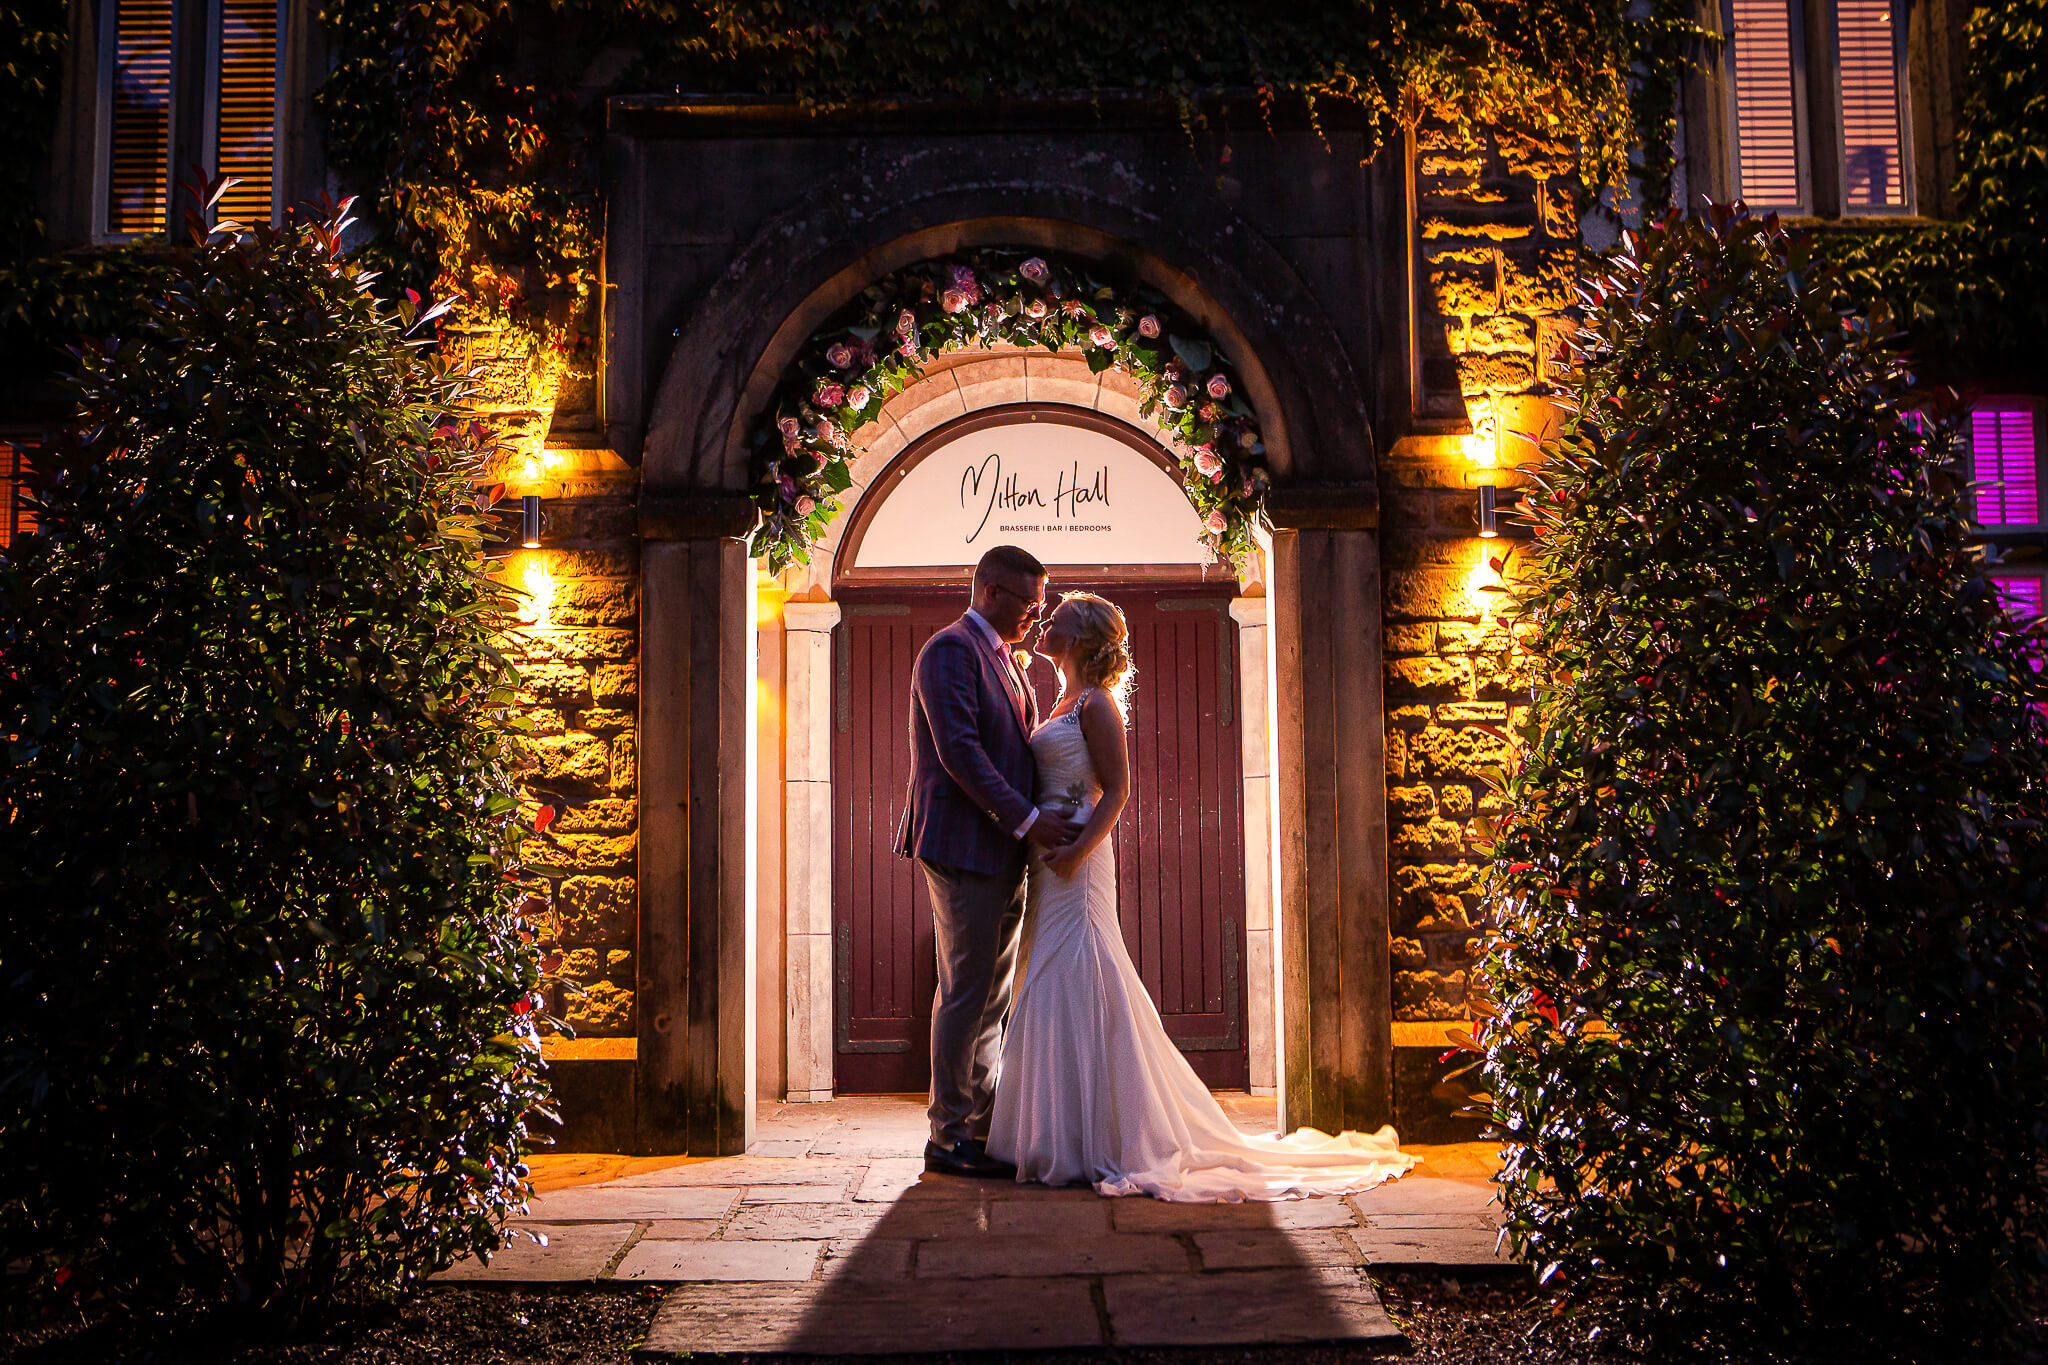 best-wedding-photographers-uk-europe-stanbury-photography-189